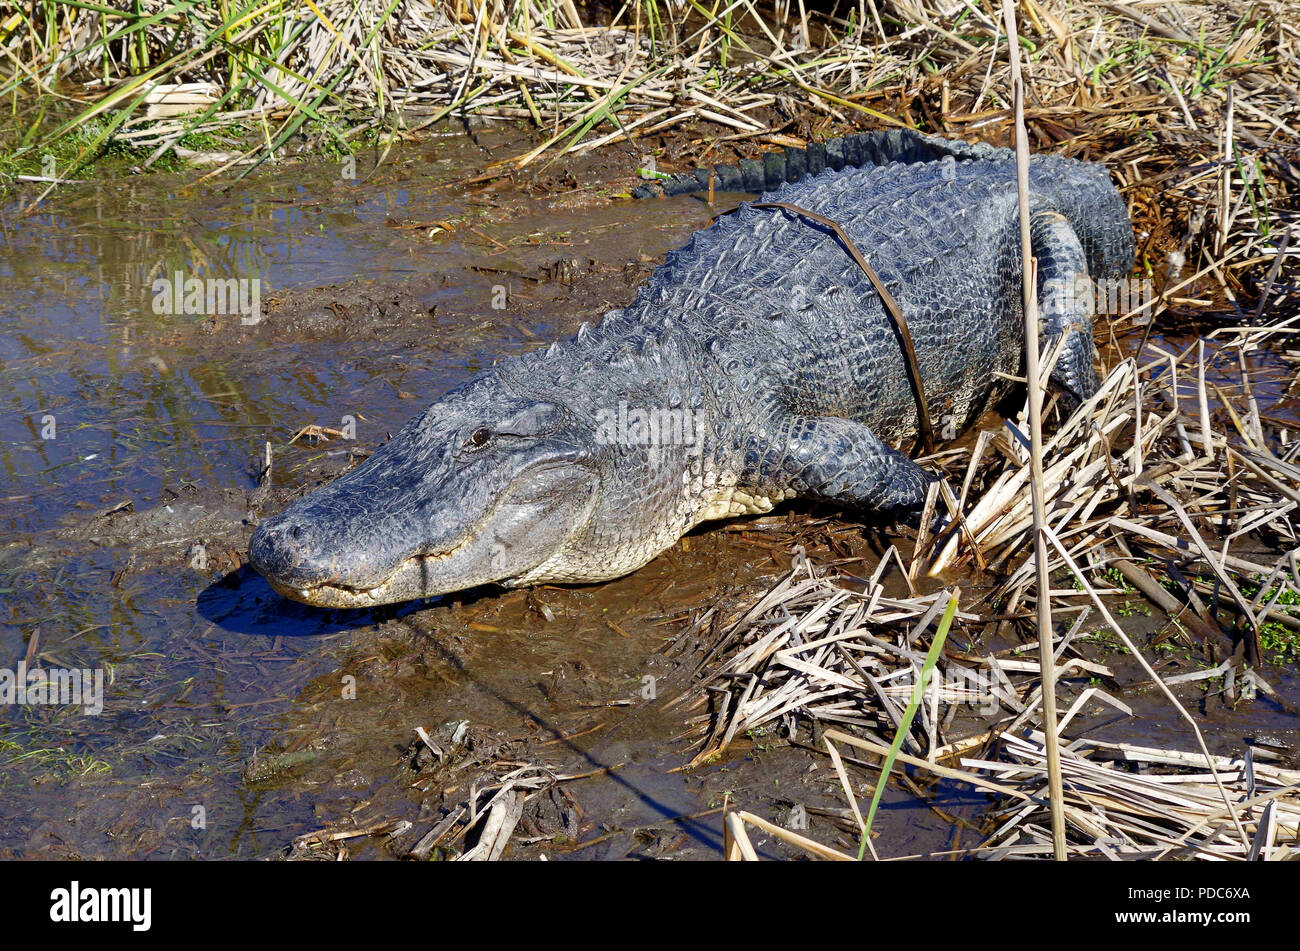 American Alligator Photographed at the Leonabelle Turnbull Birding Center in Port Aransas, Texas USA near Corpus Christ. Stock Photo